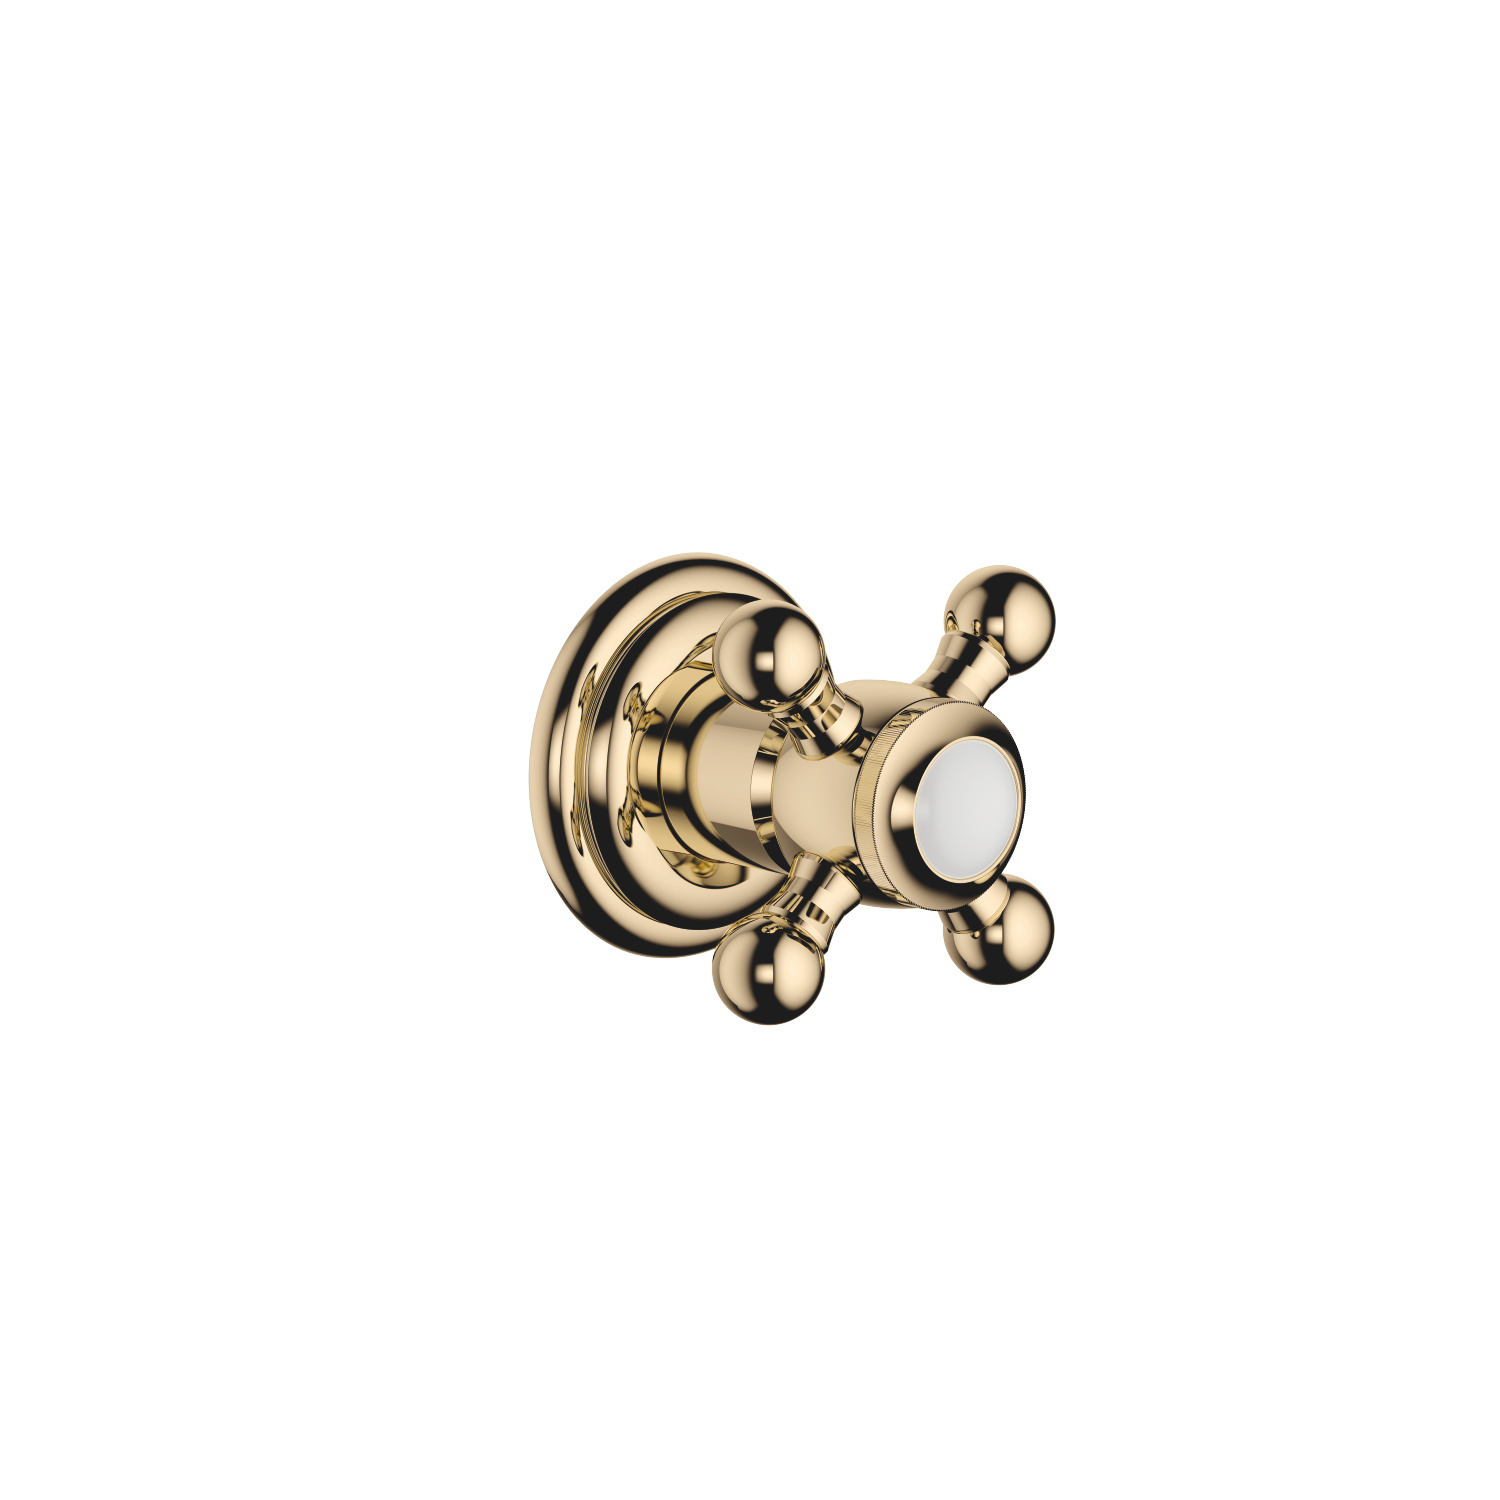 "Volume Control clockwise-closing 3/4"" - Durabrass - 36 608 361-09"